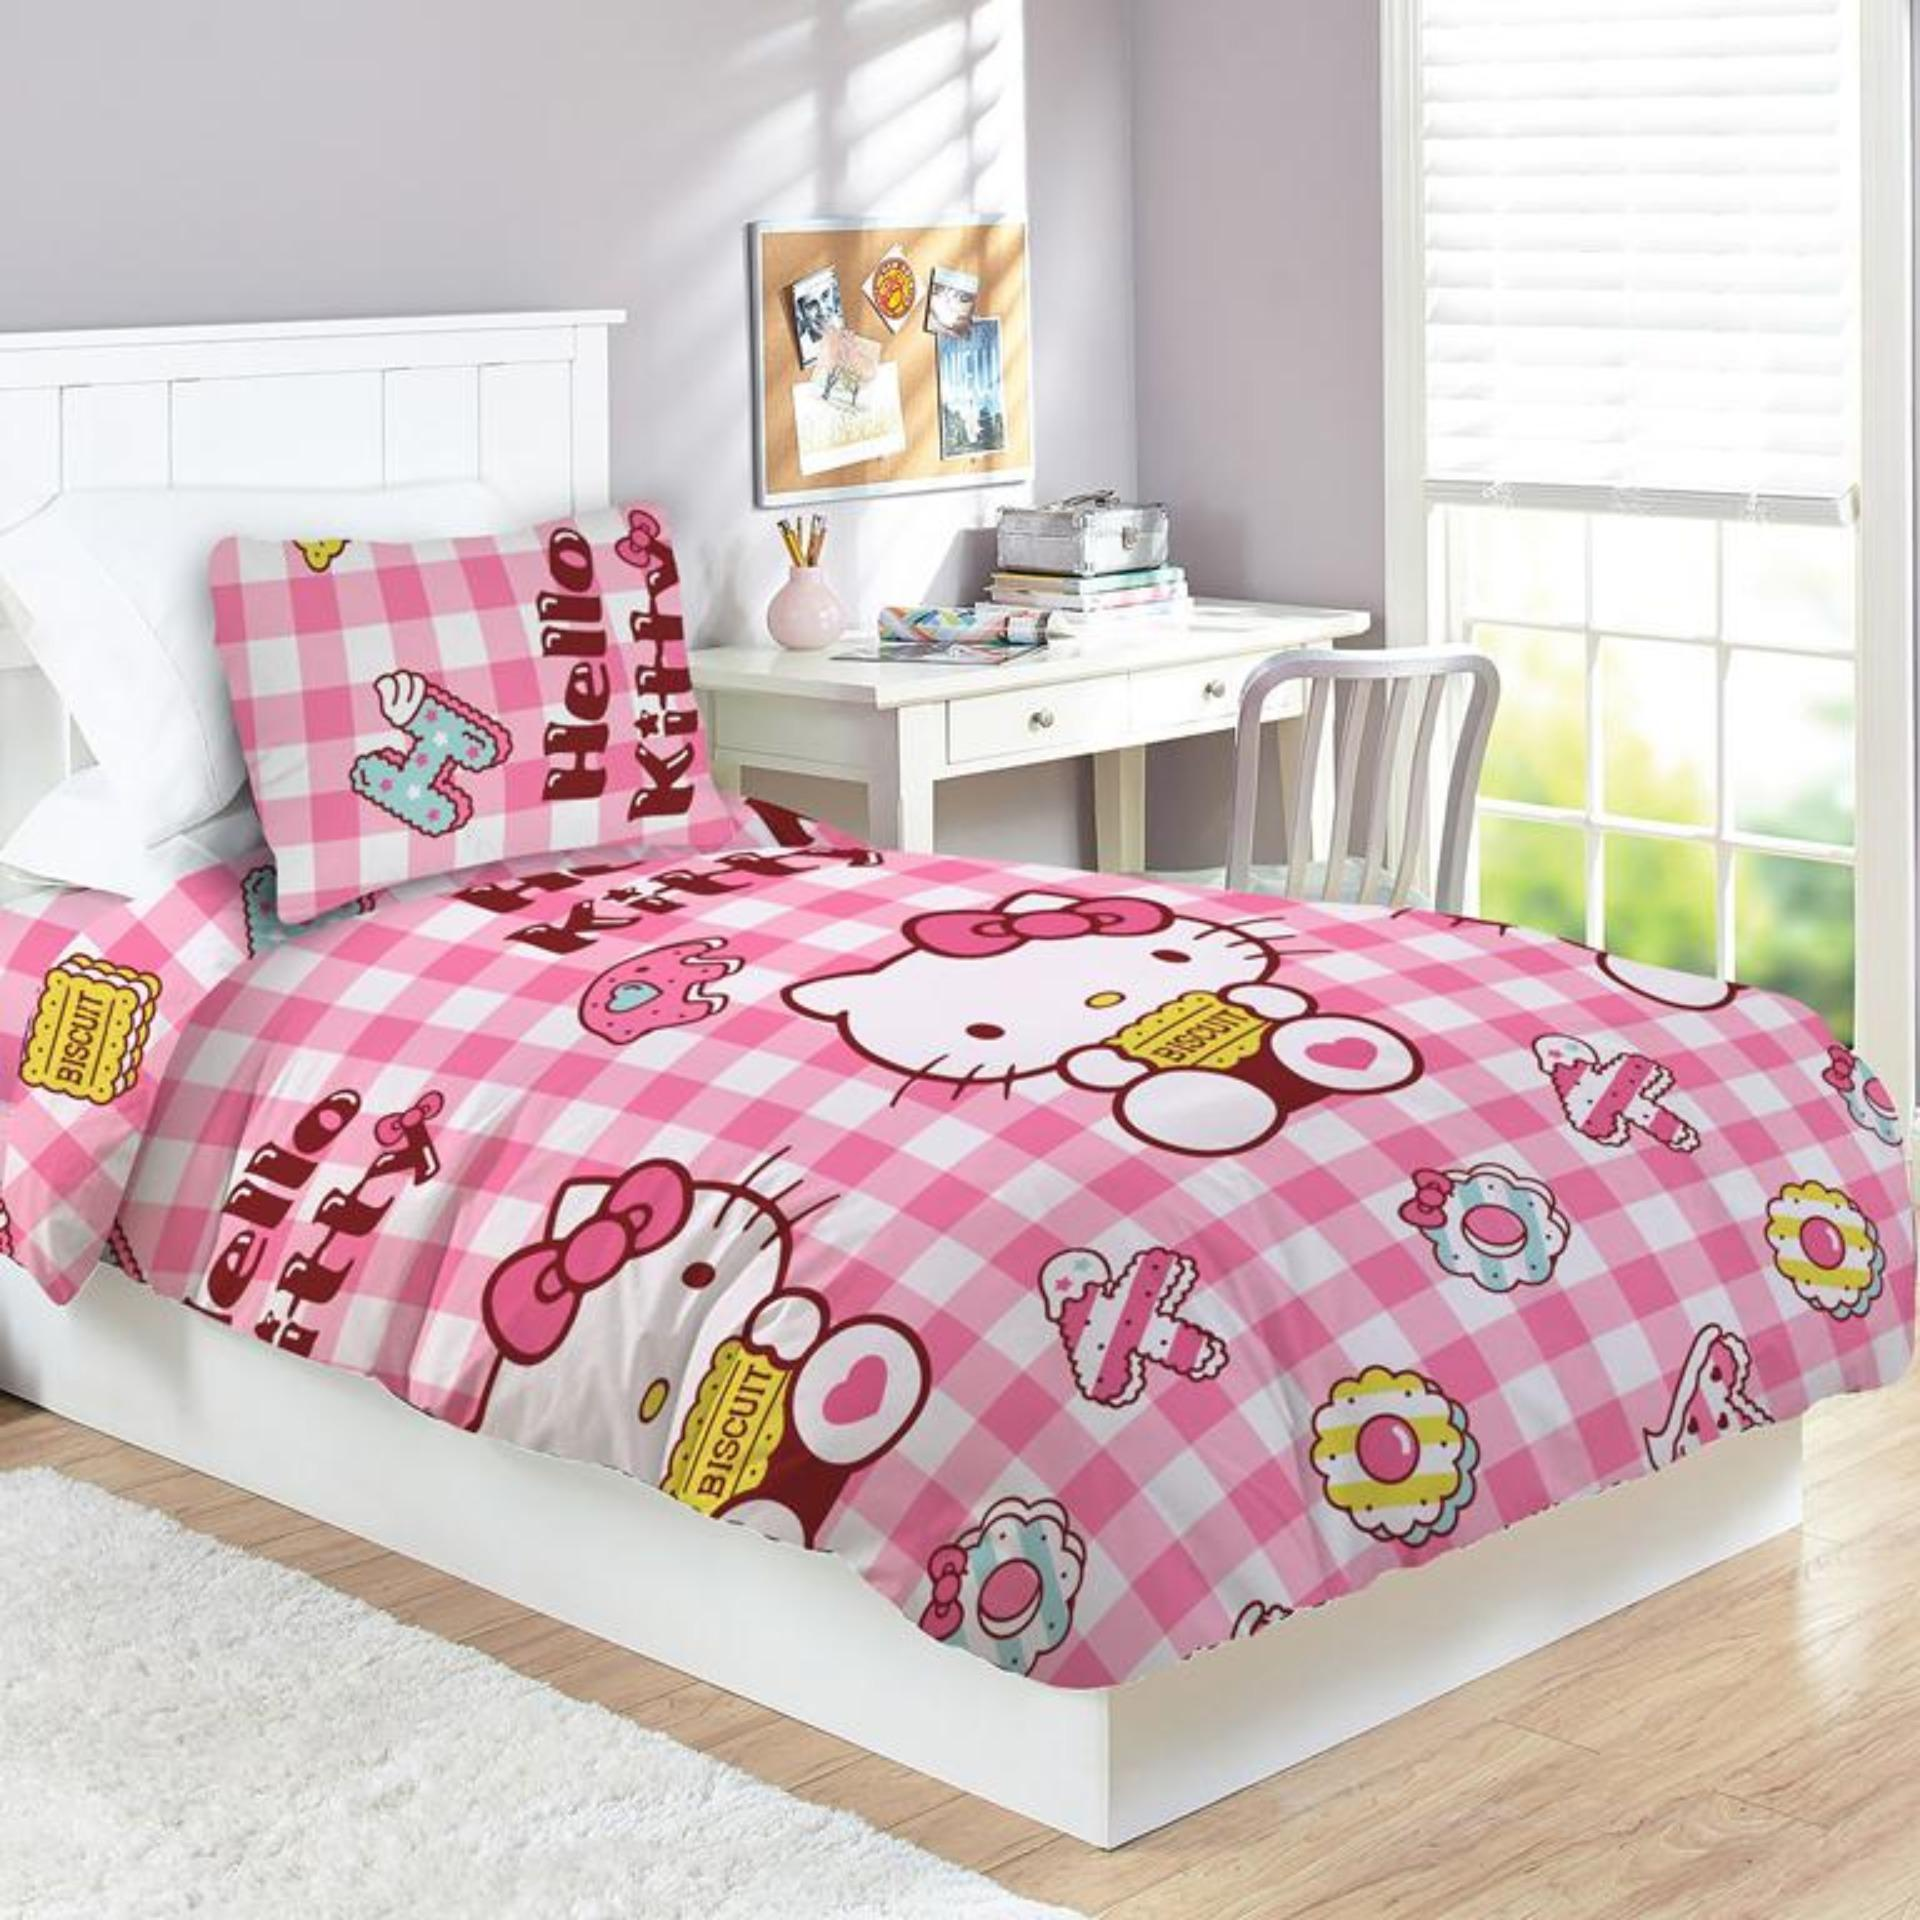 Selimut Valda Rotary Sutra Panel 150x200 Hello Kitty Biscuit